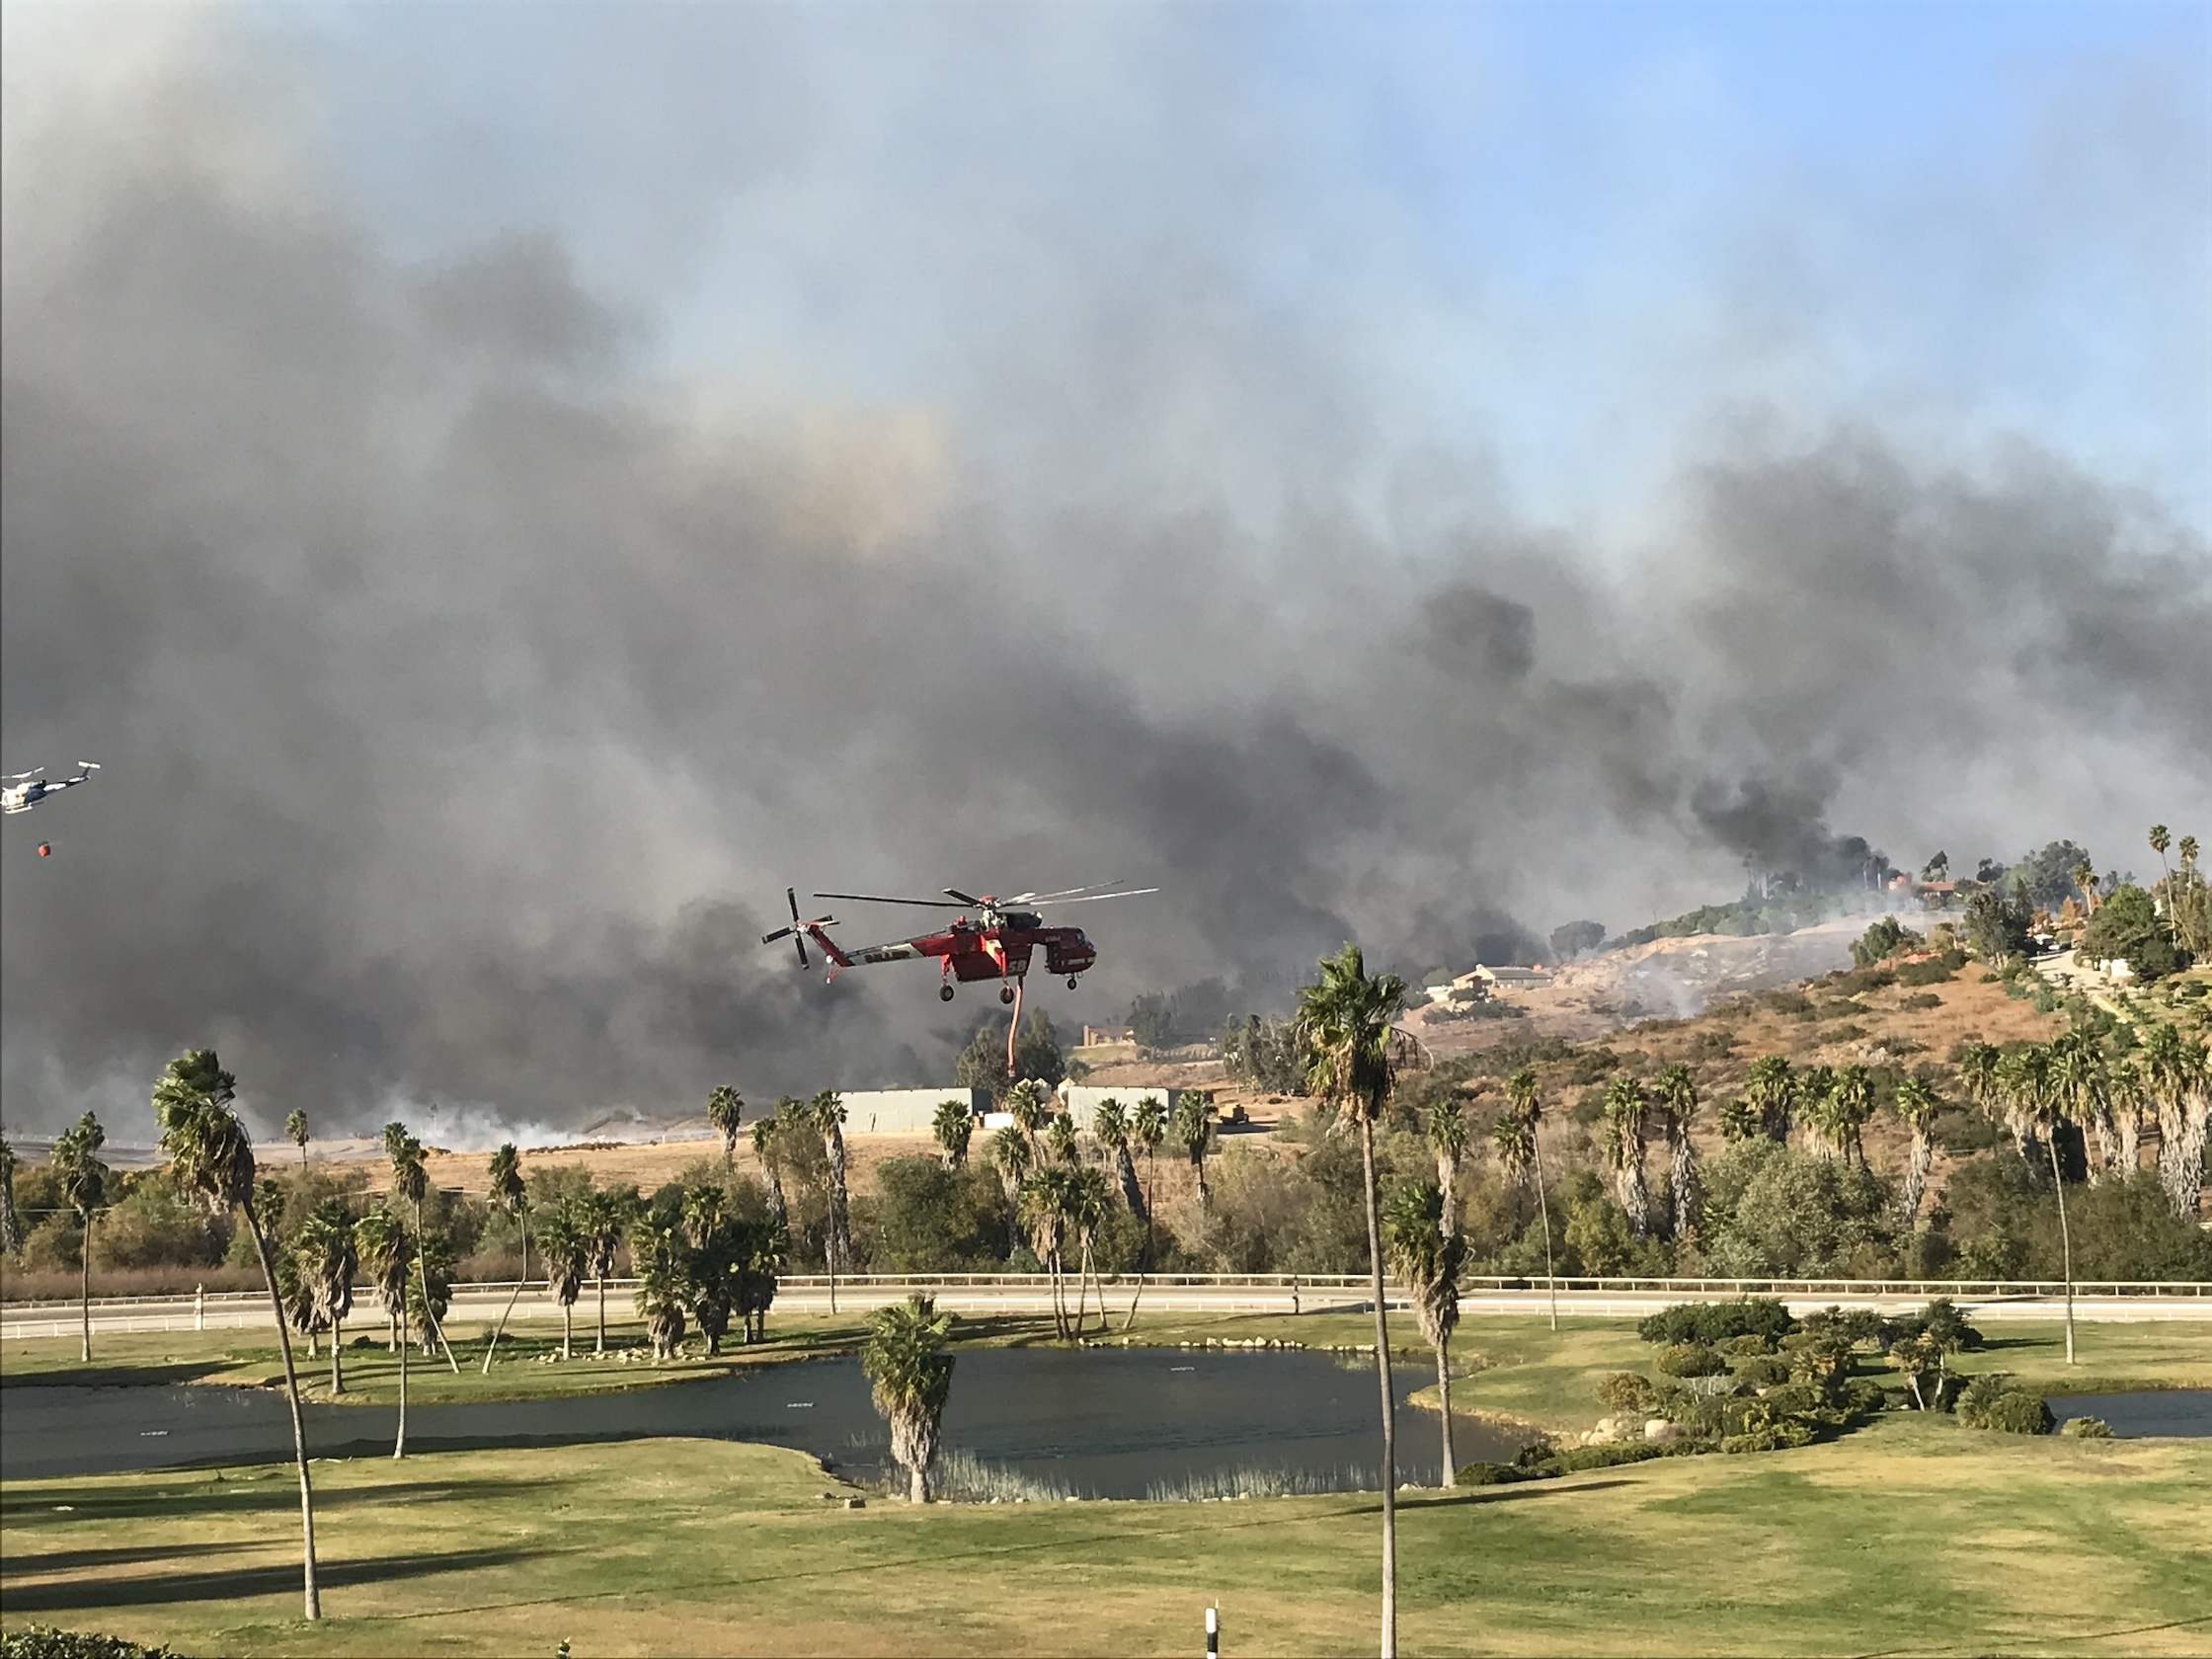 A helicopter arrives to suck water from the ponds at the Trifecta Equine Athletic Center, which is then taken to douse the raging wildfire